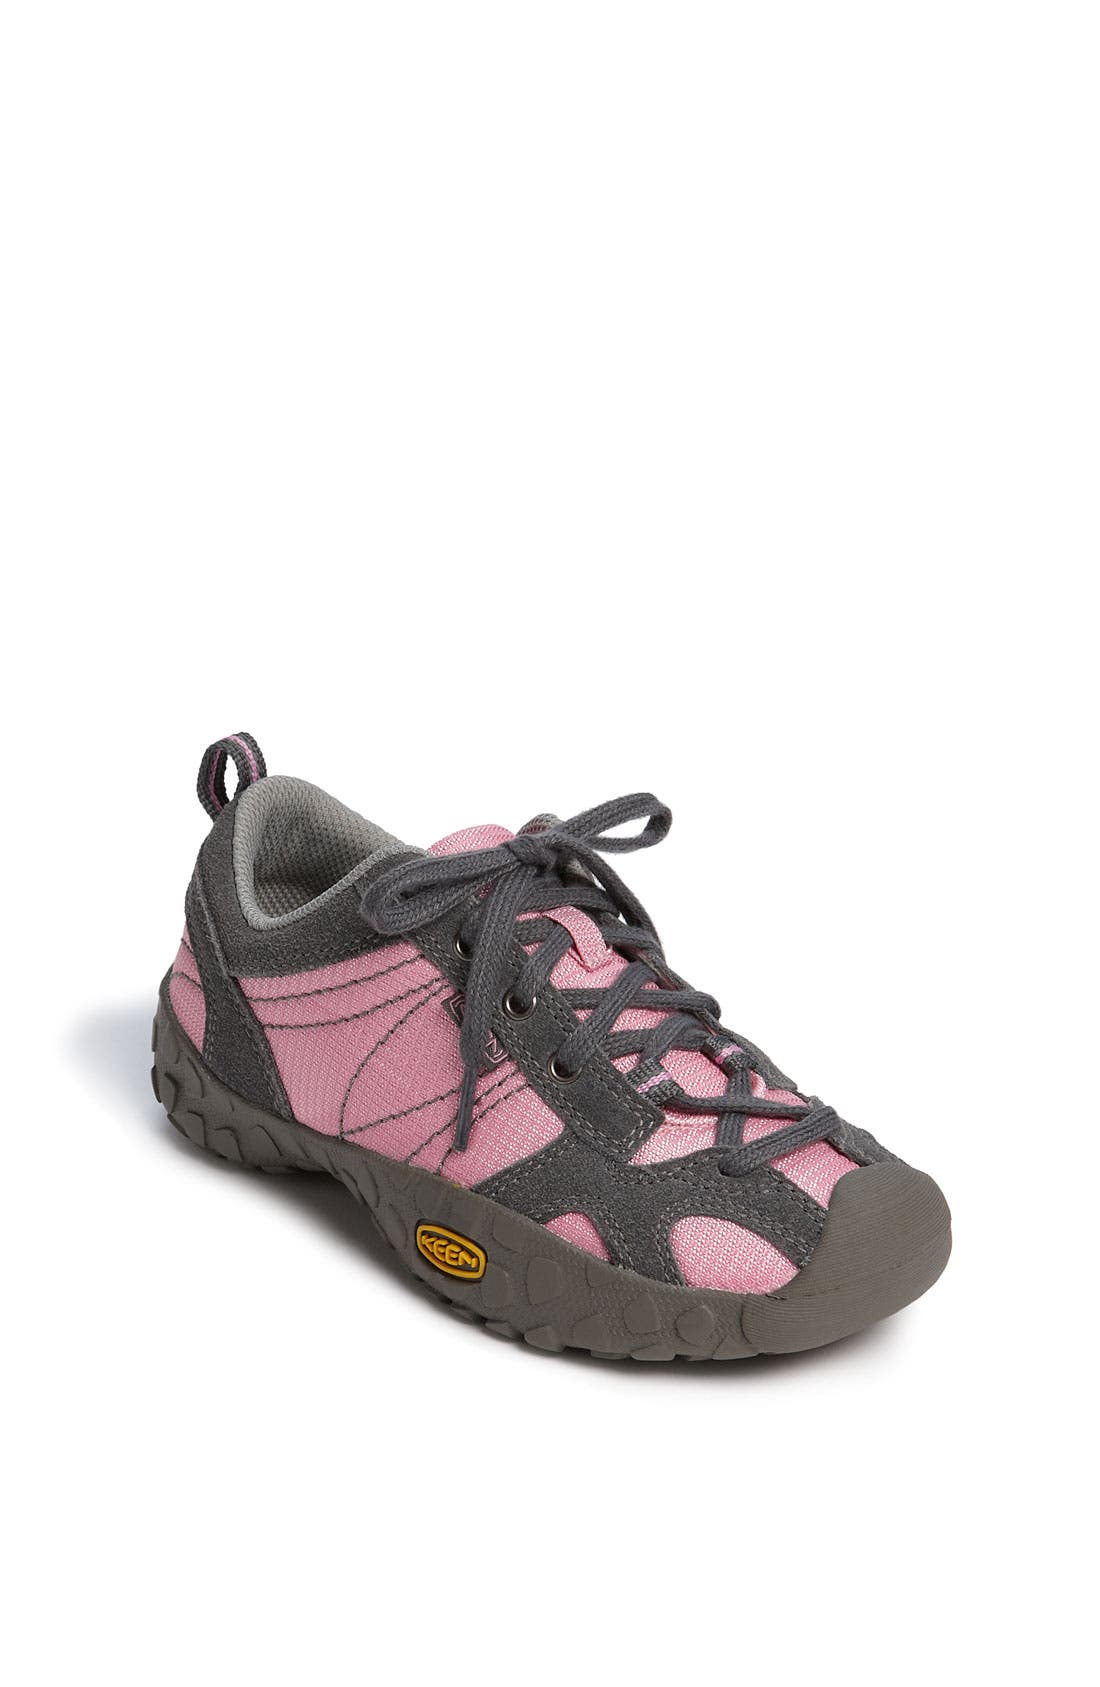 Alternate Image 1 Selected - Keen 'Ambler' Trail Shoe (Toddler, Little Kid & Big Kid)